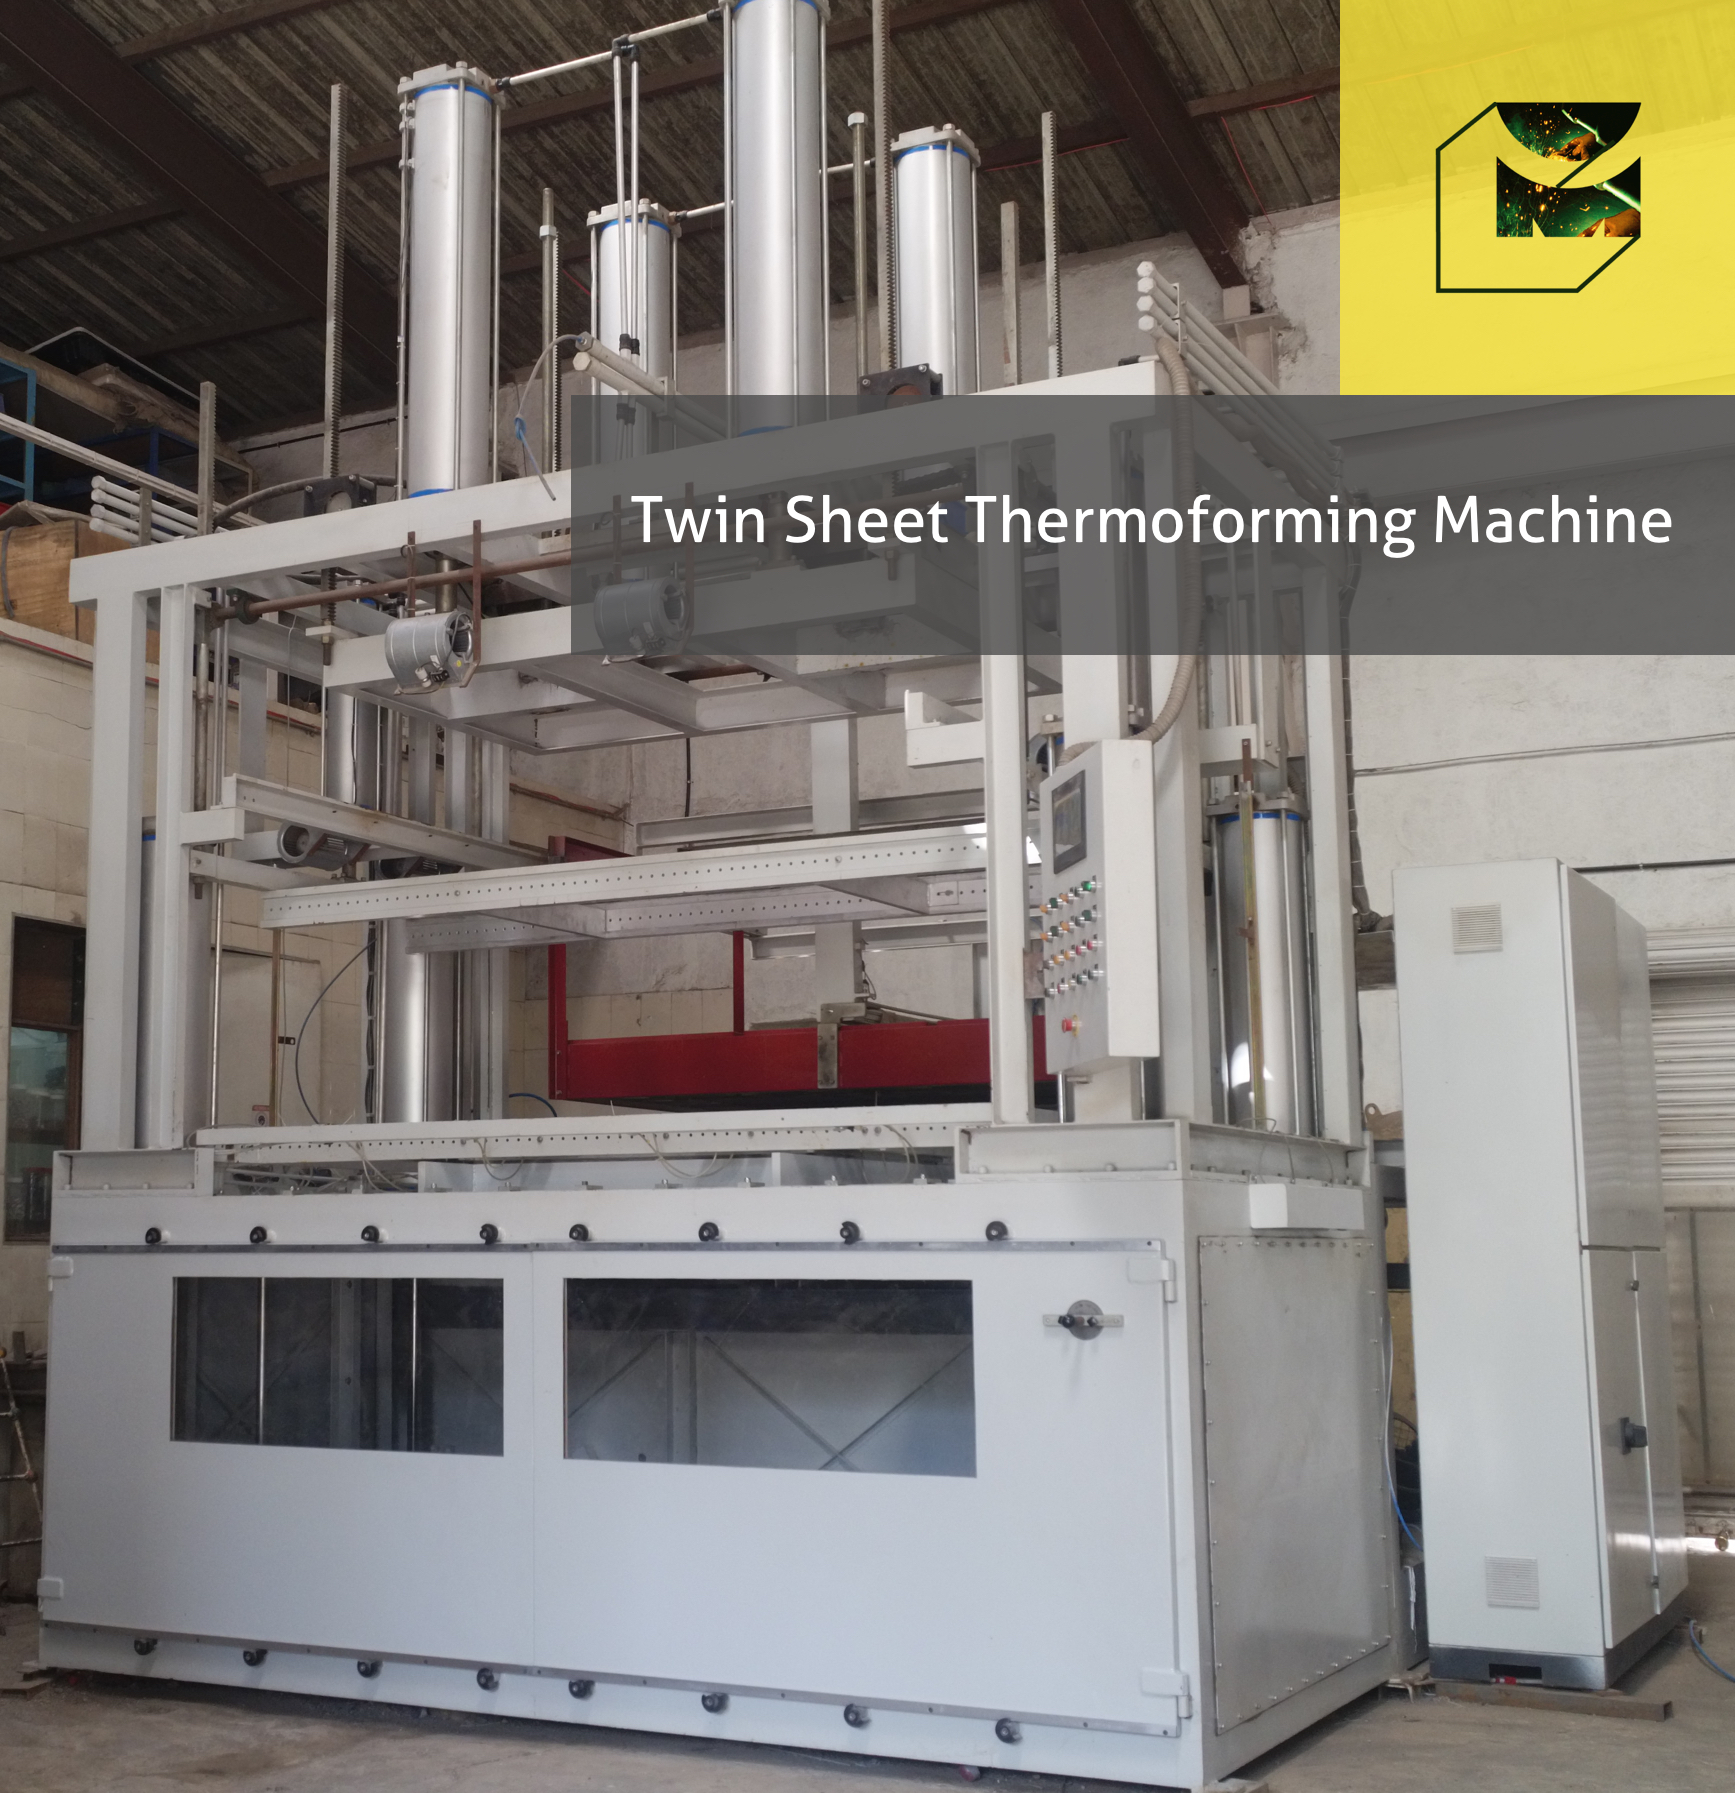 This is Machinecraft PF1 Series with Twin Sheet Forming Capability with Forming Area 1000 mm x 2000 mm